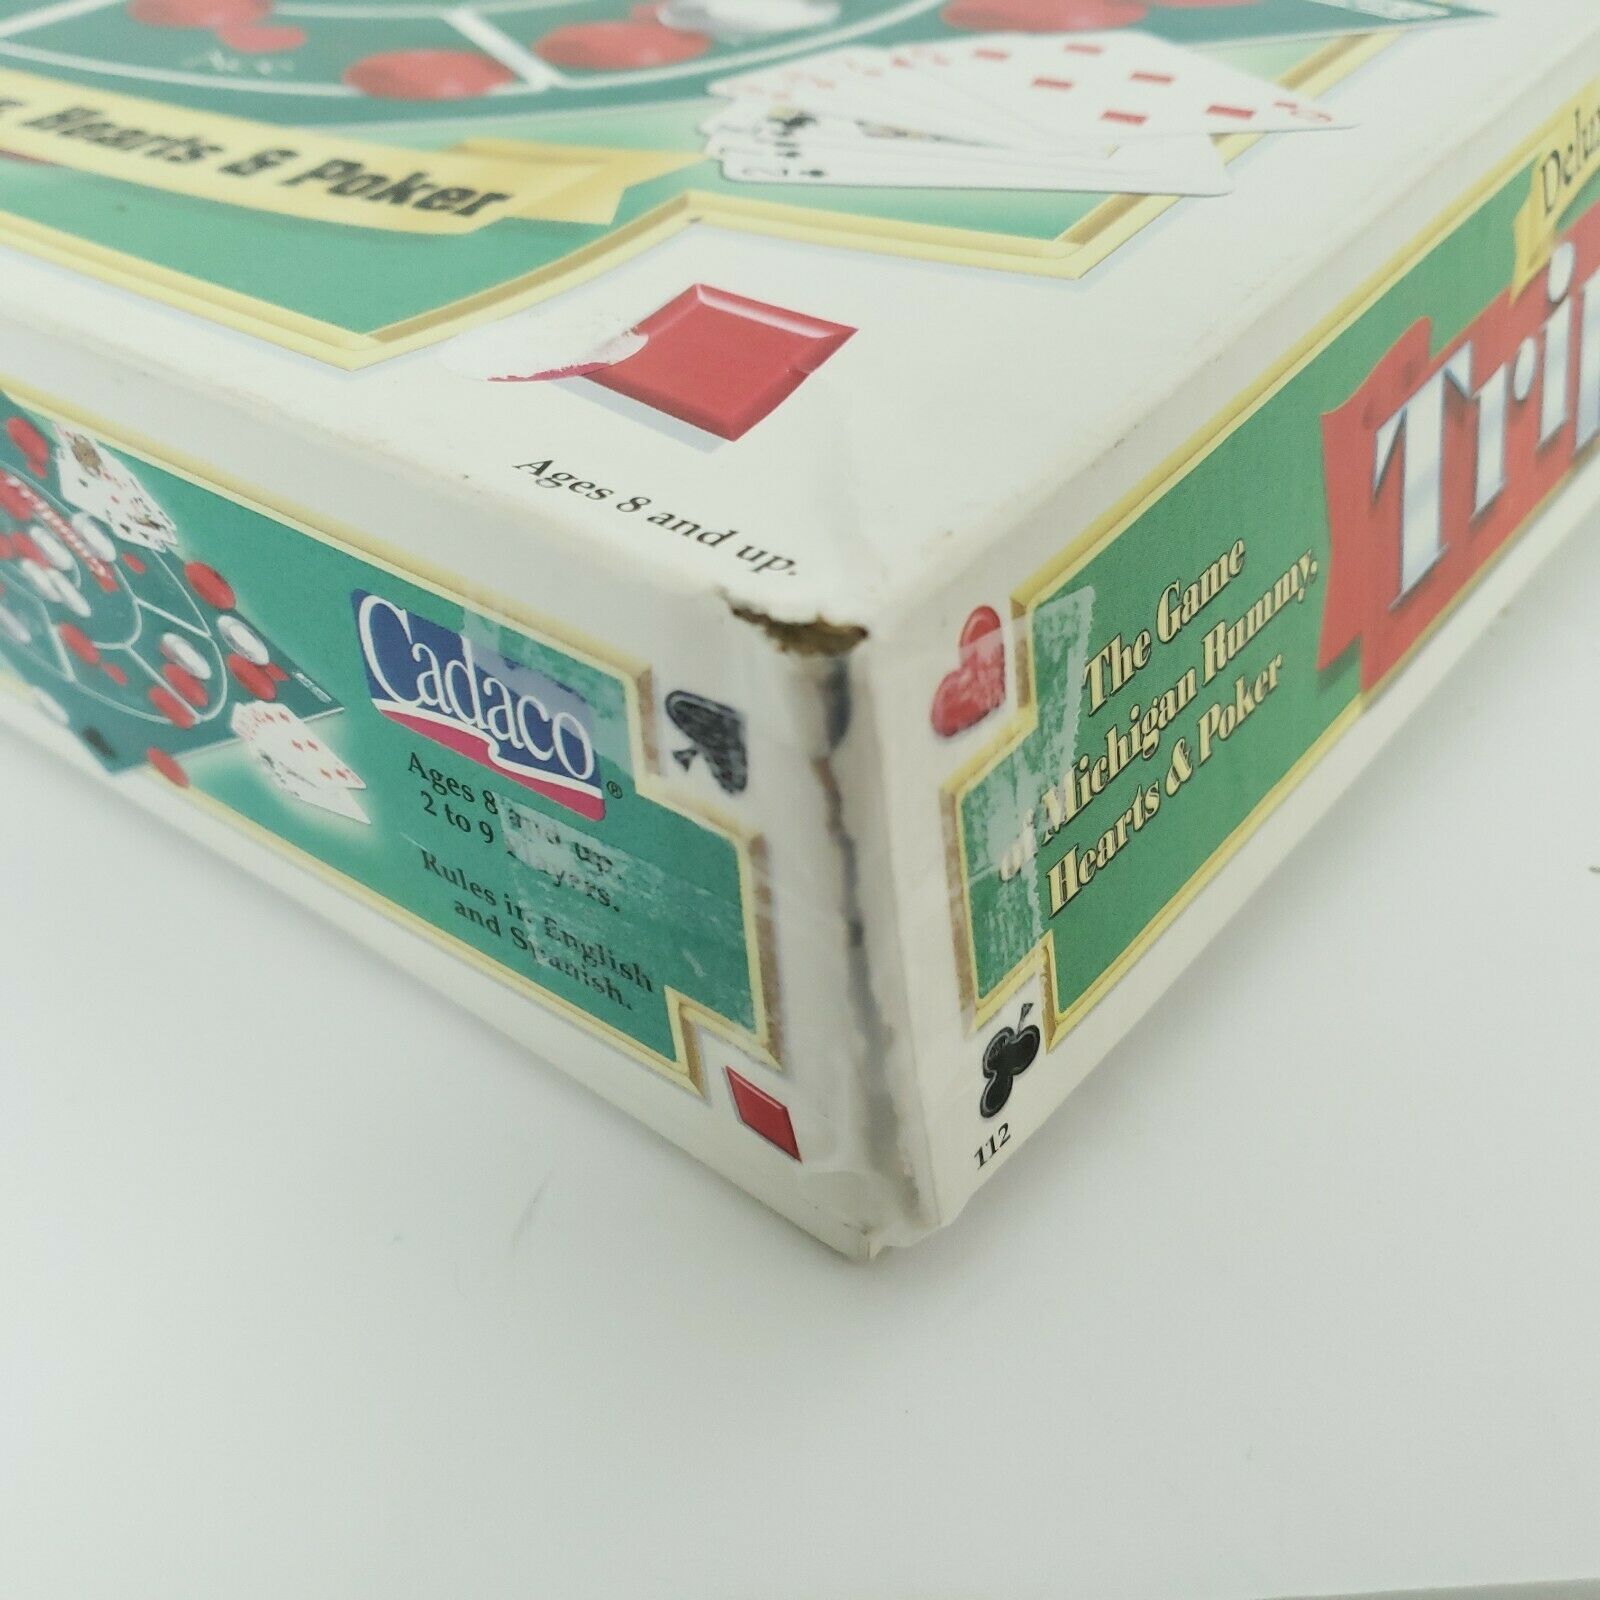 Tripoley Board Game Deluxe Mat Version Cadaco 2-9 Players Vintage 1999 Complete image 9